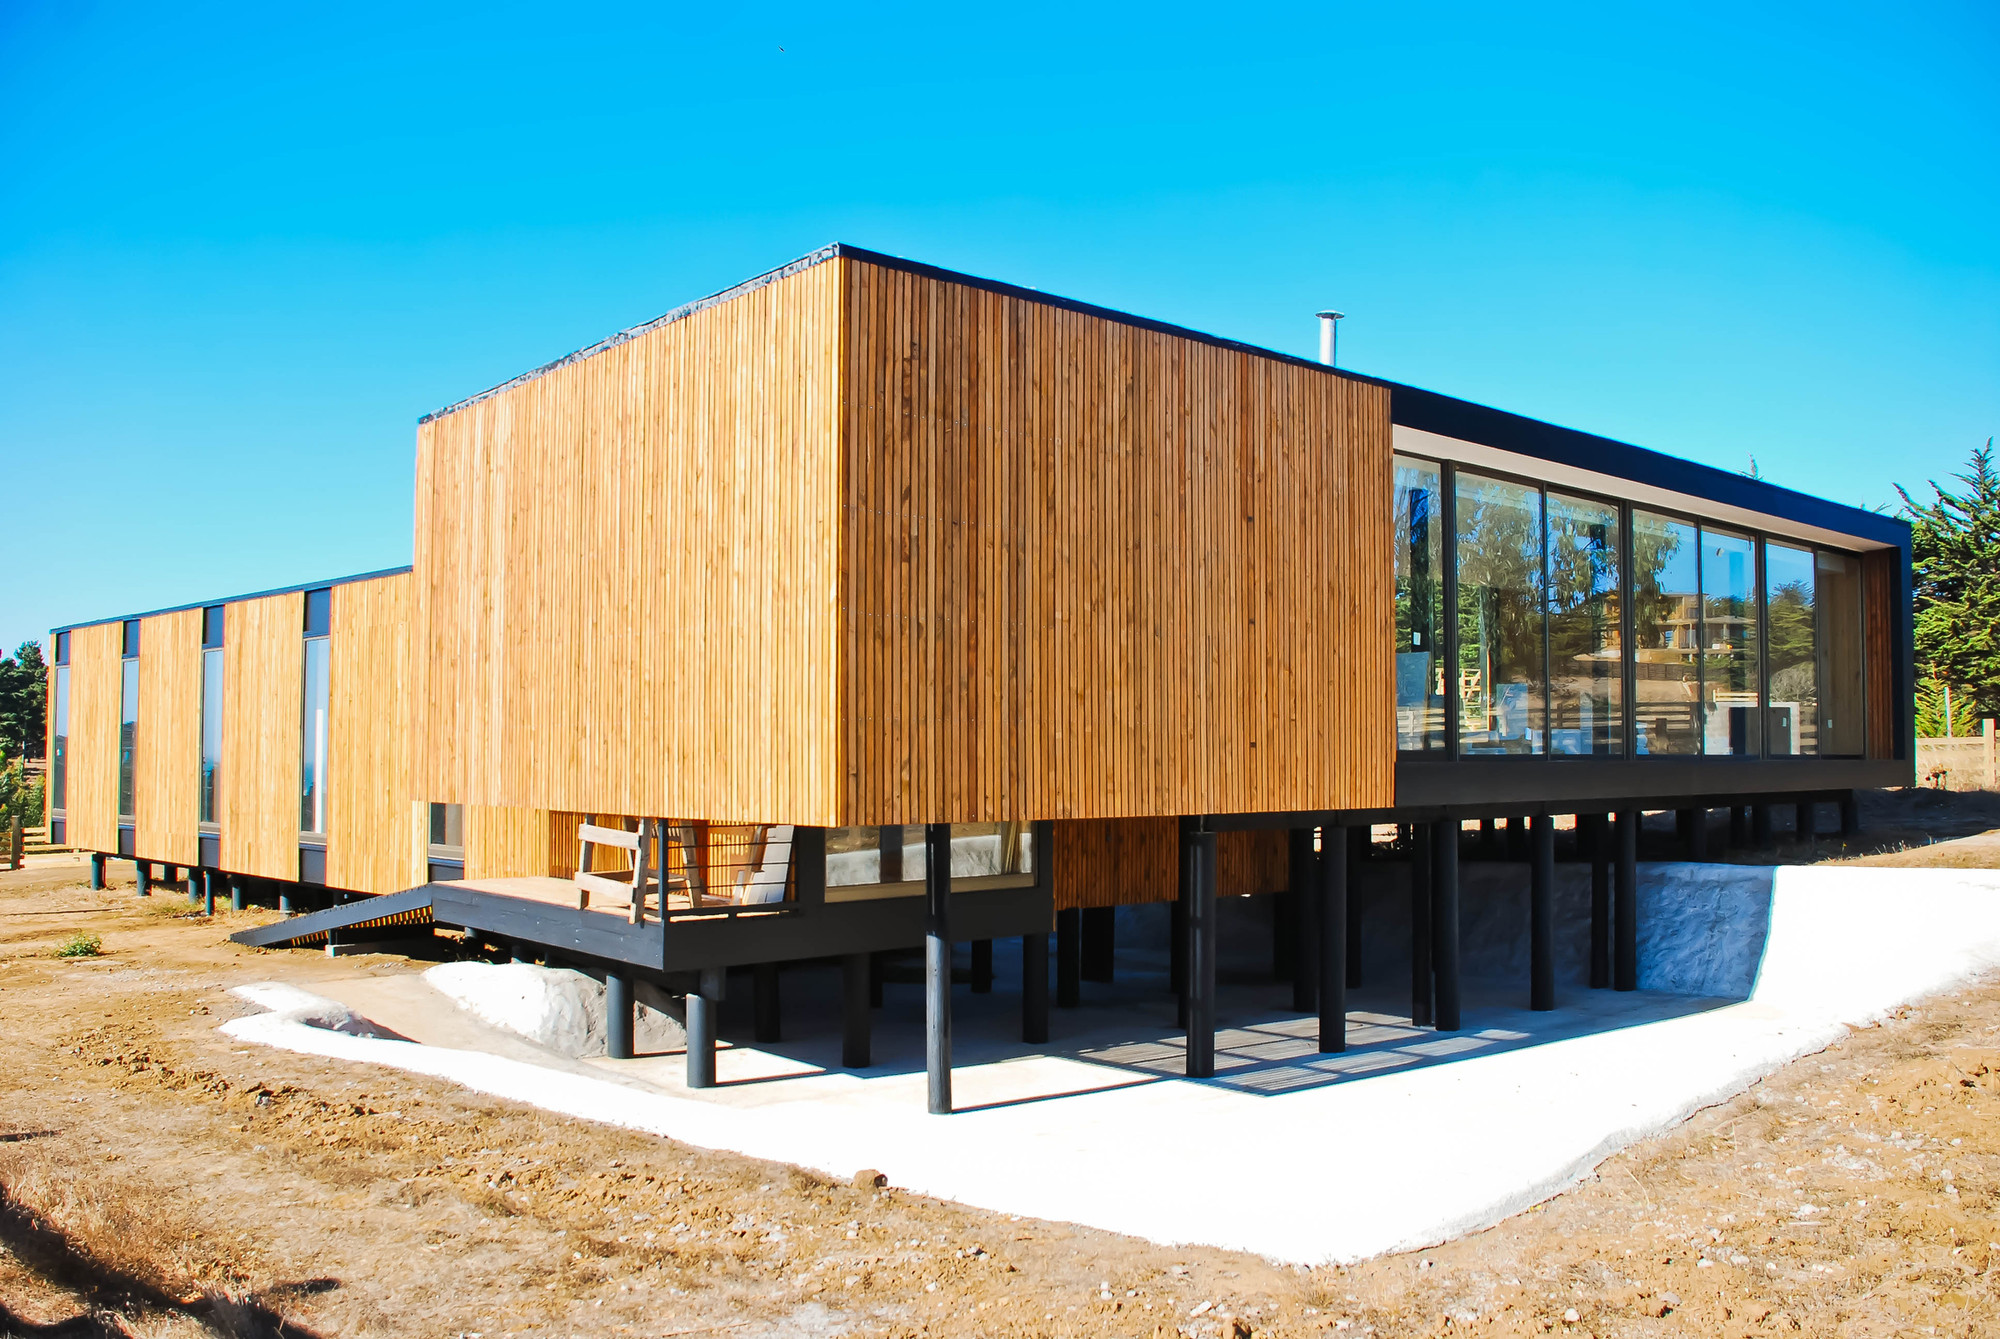 L House / LAARQ, Courtesy of LAARQ